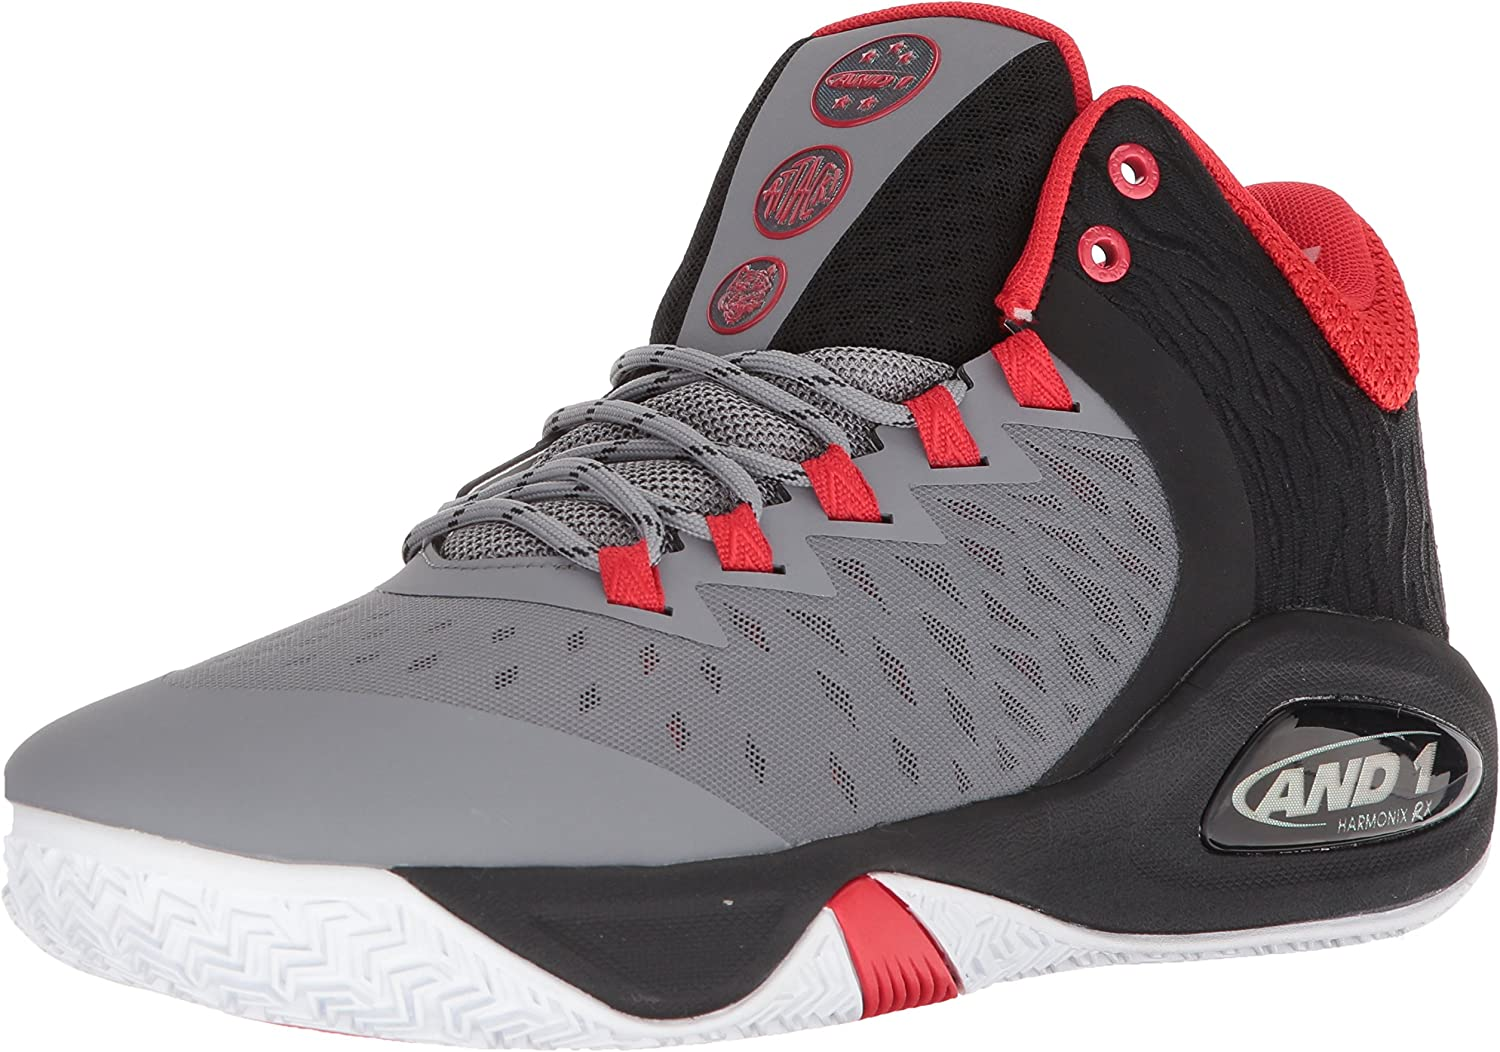 AND1 Men's Attack Mid Basketball shoes, December Sky Black Fiery Red, 8 D(M) US